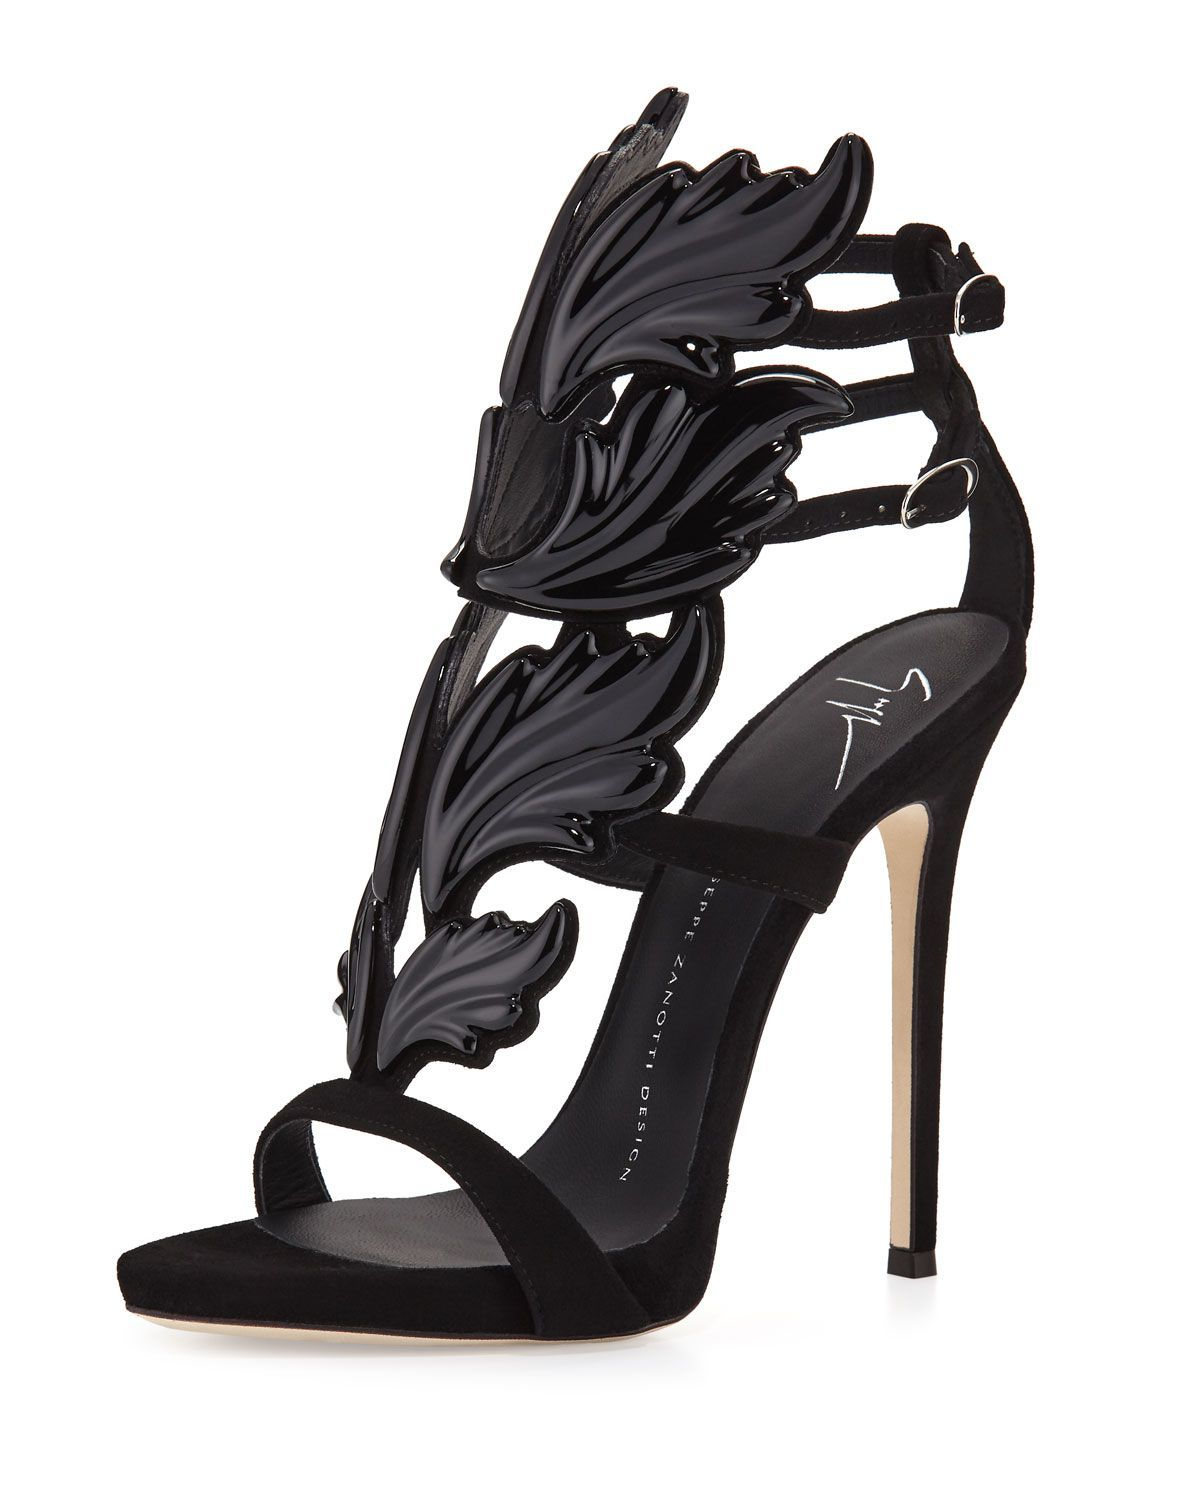 d0be3bb8703755 Giuseppe Zanotti suede sandal with wings appliqu. 4.8